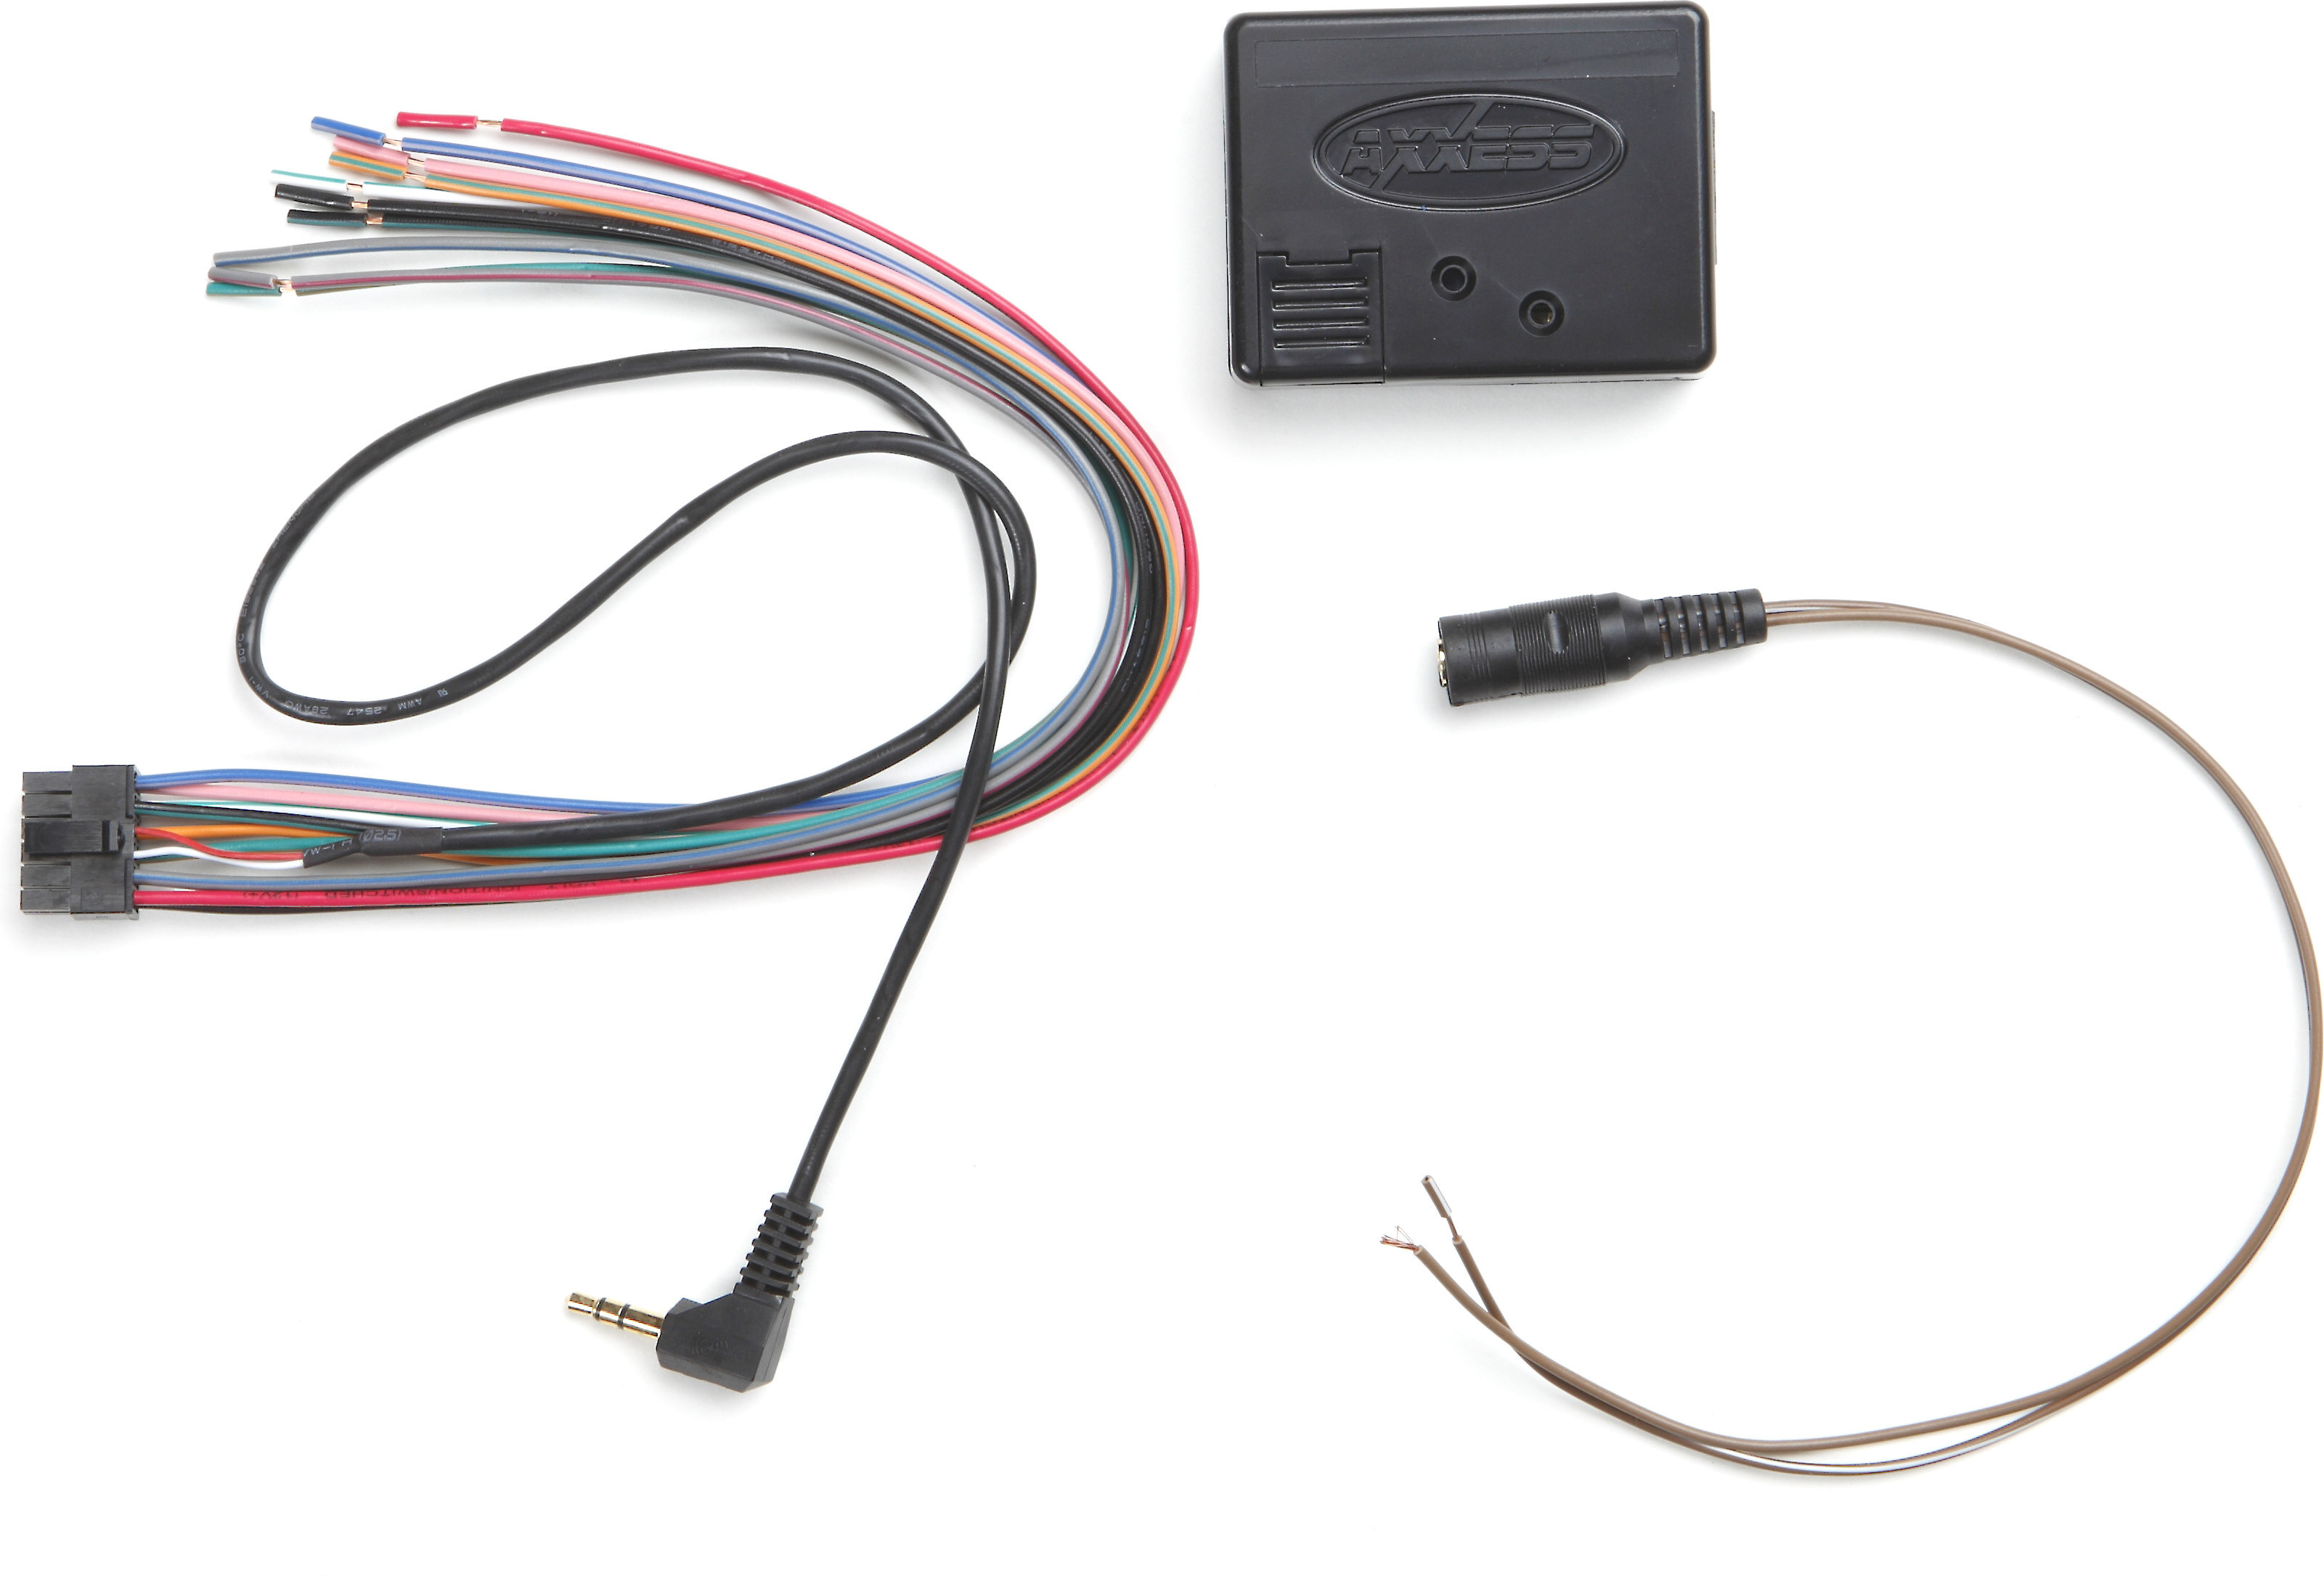 Axxess ASWC-1 Steering Wheel Control Adapter Connects your